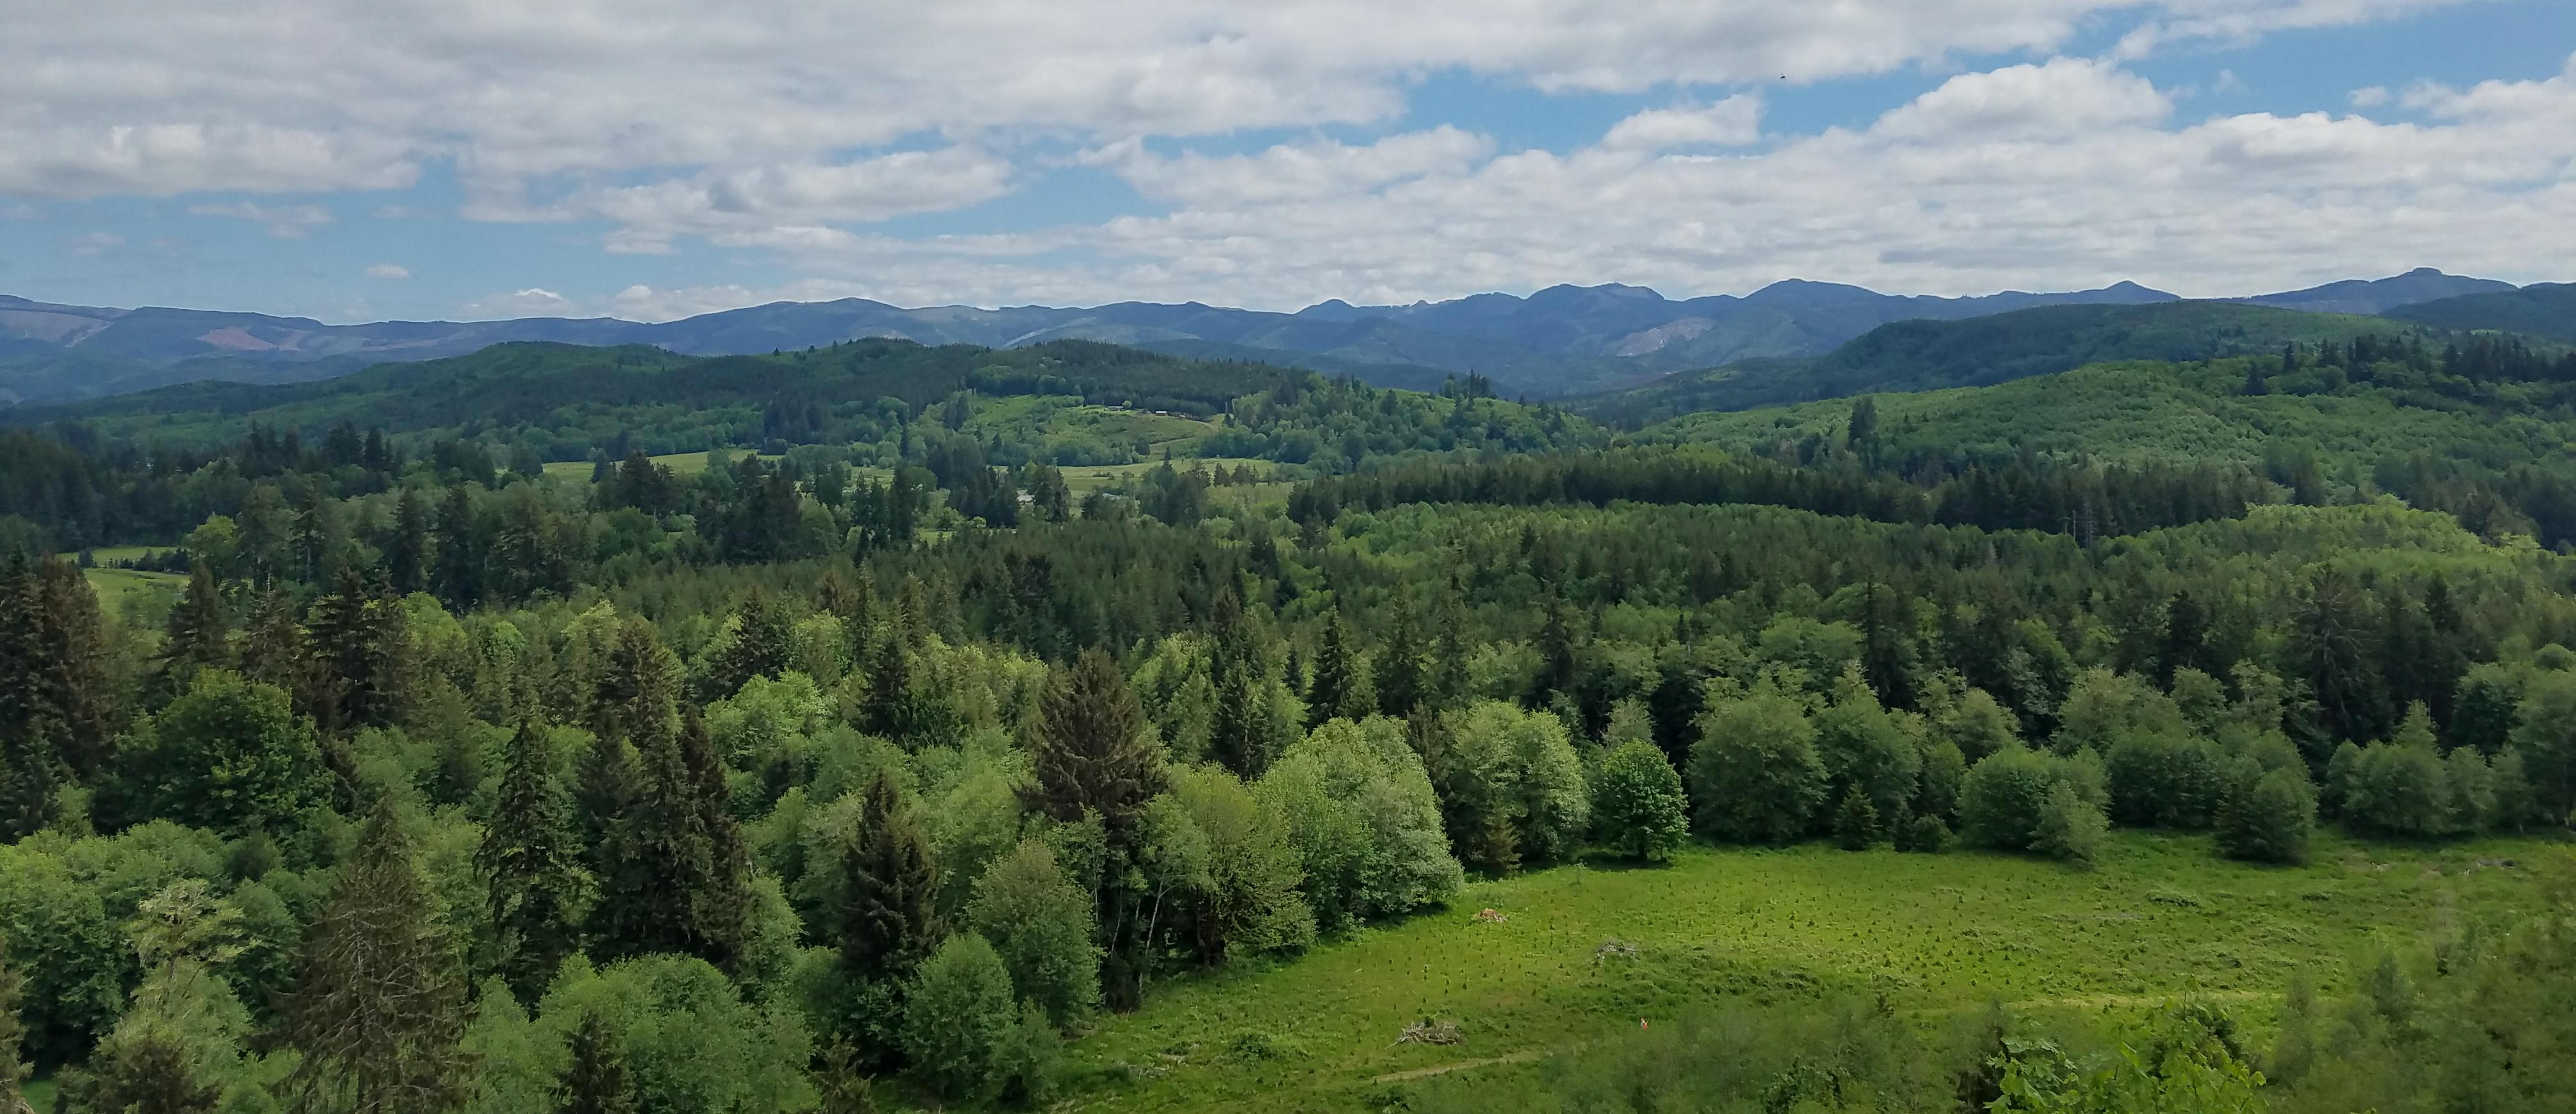 Scenic view of hilly forestland in western Washington